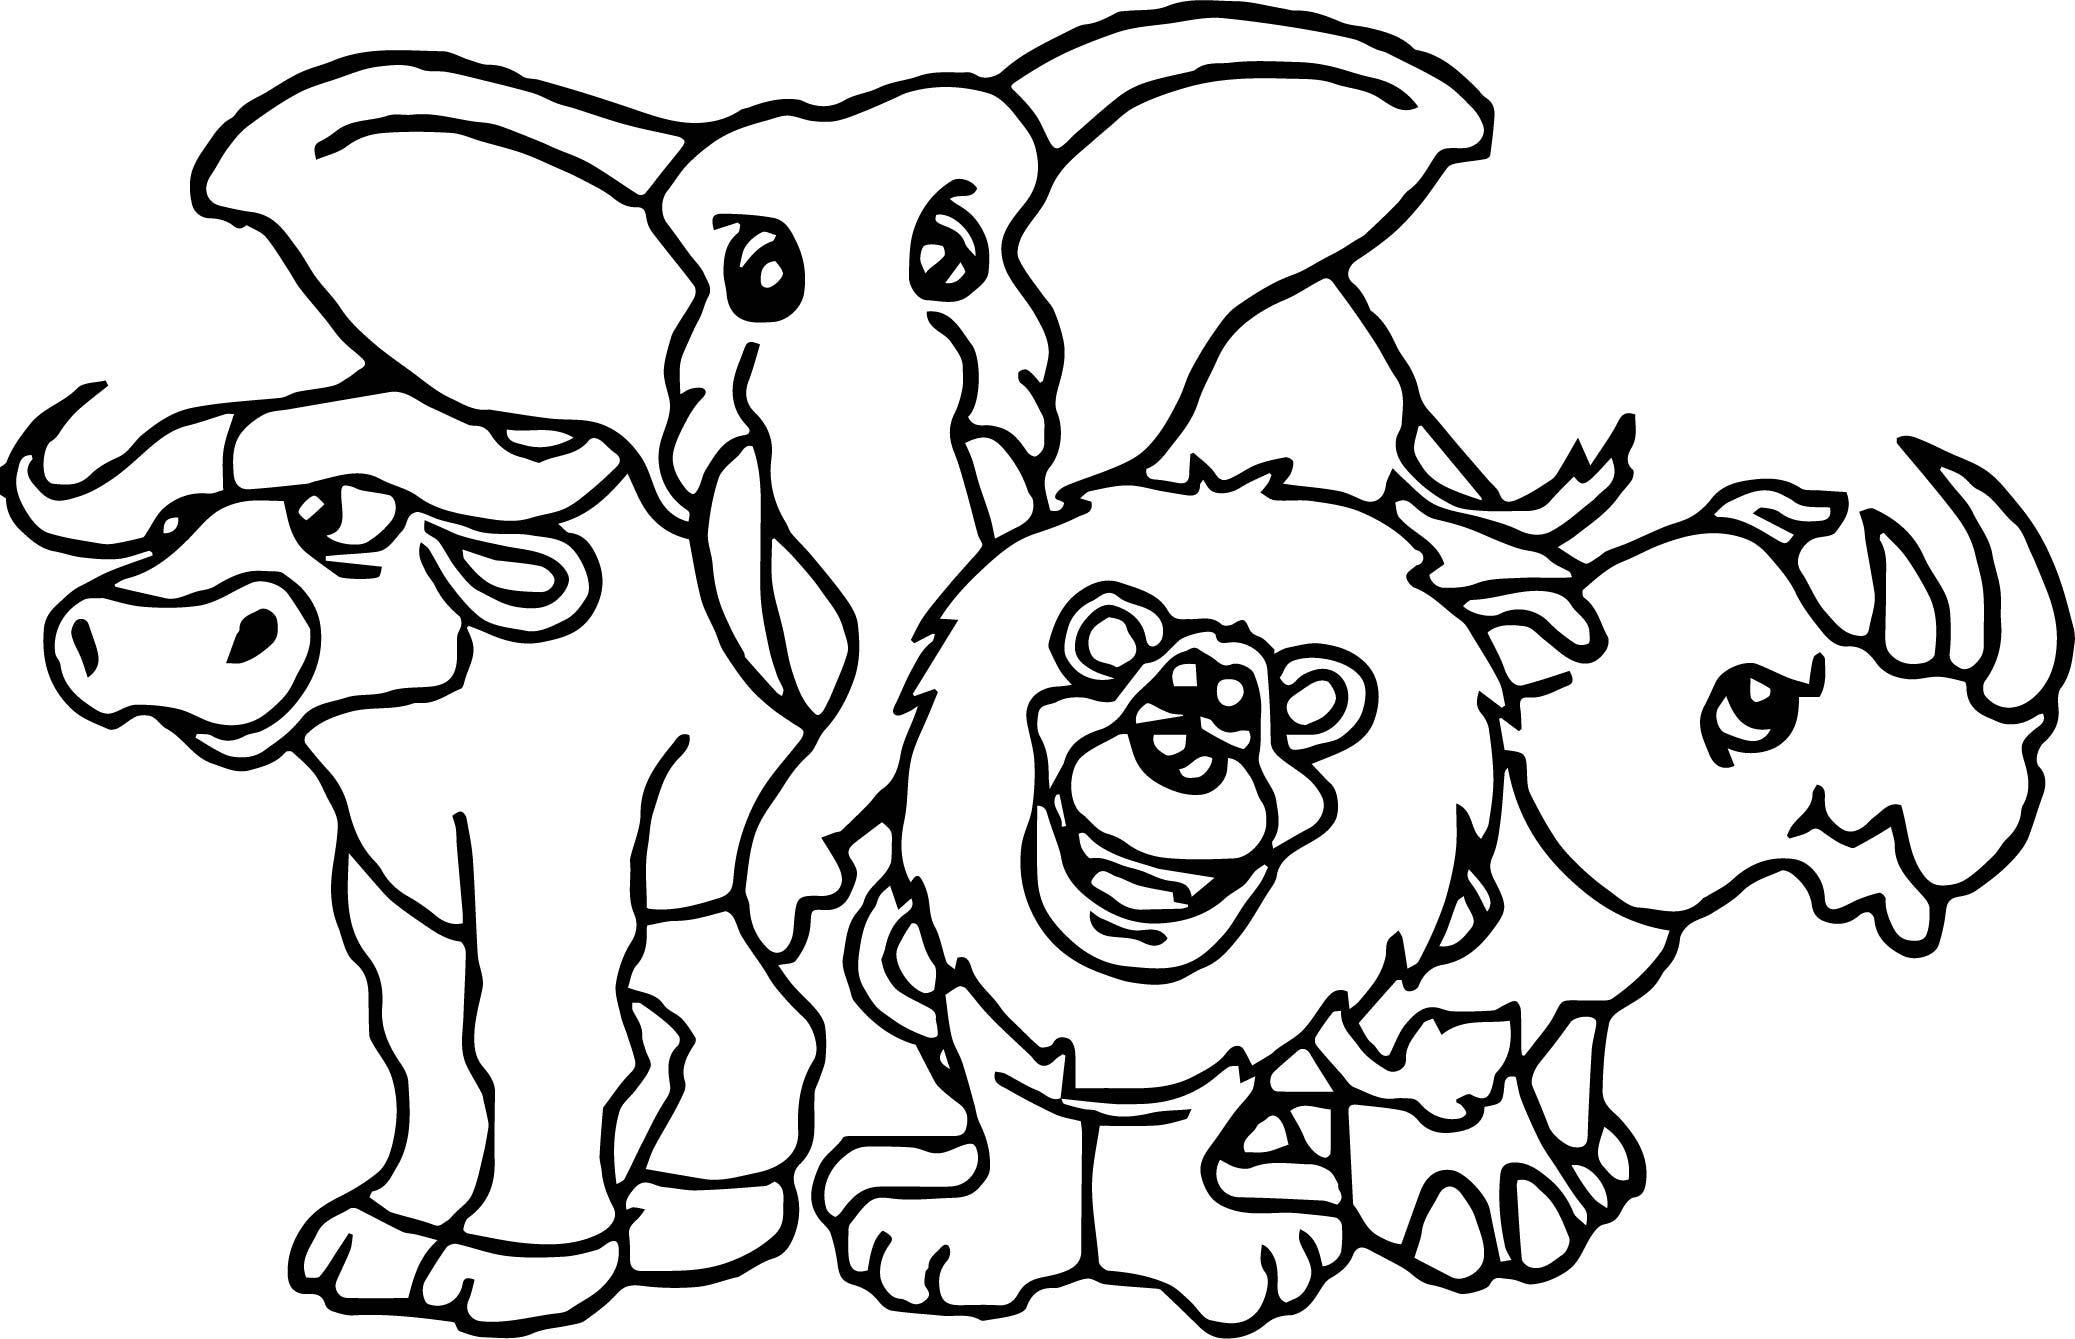 Disneys Animal Kingdom Coloring Pages Coloring Pages Disney Animal Coloring Pages